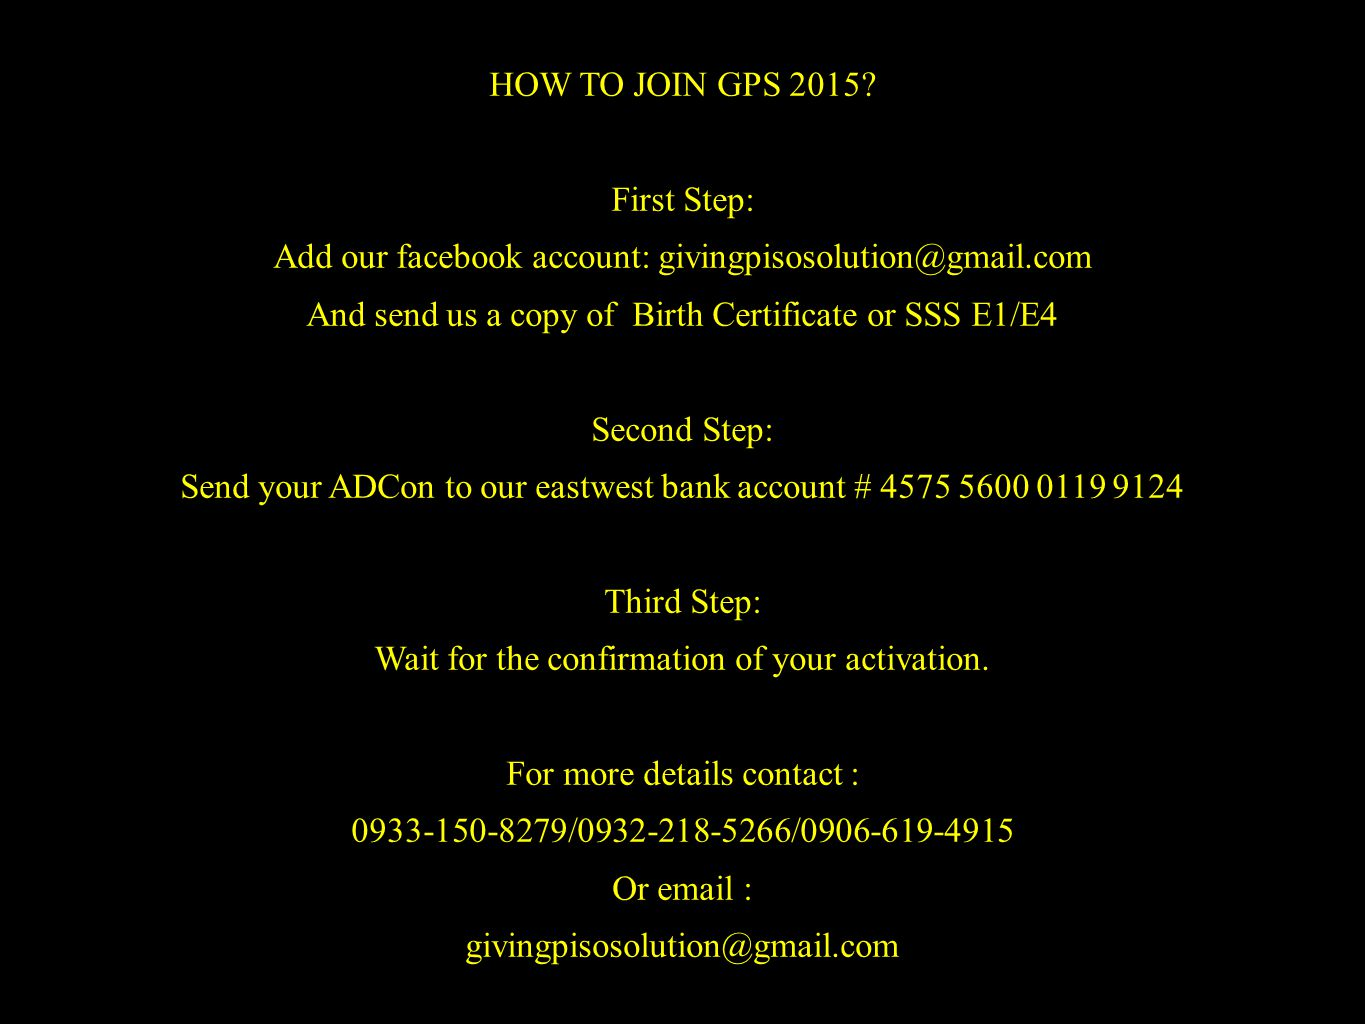 HOW TO JOIN GPS 2015.